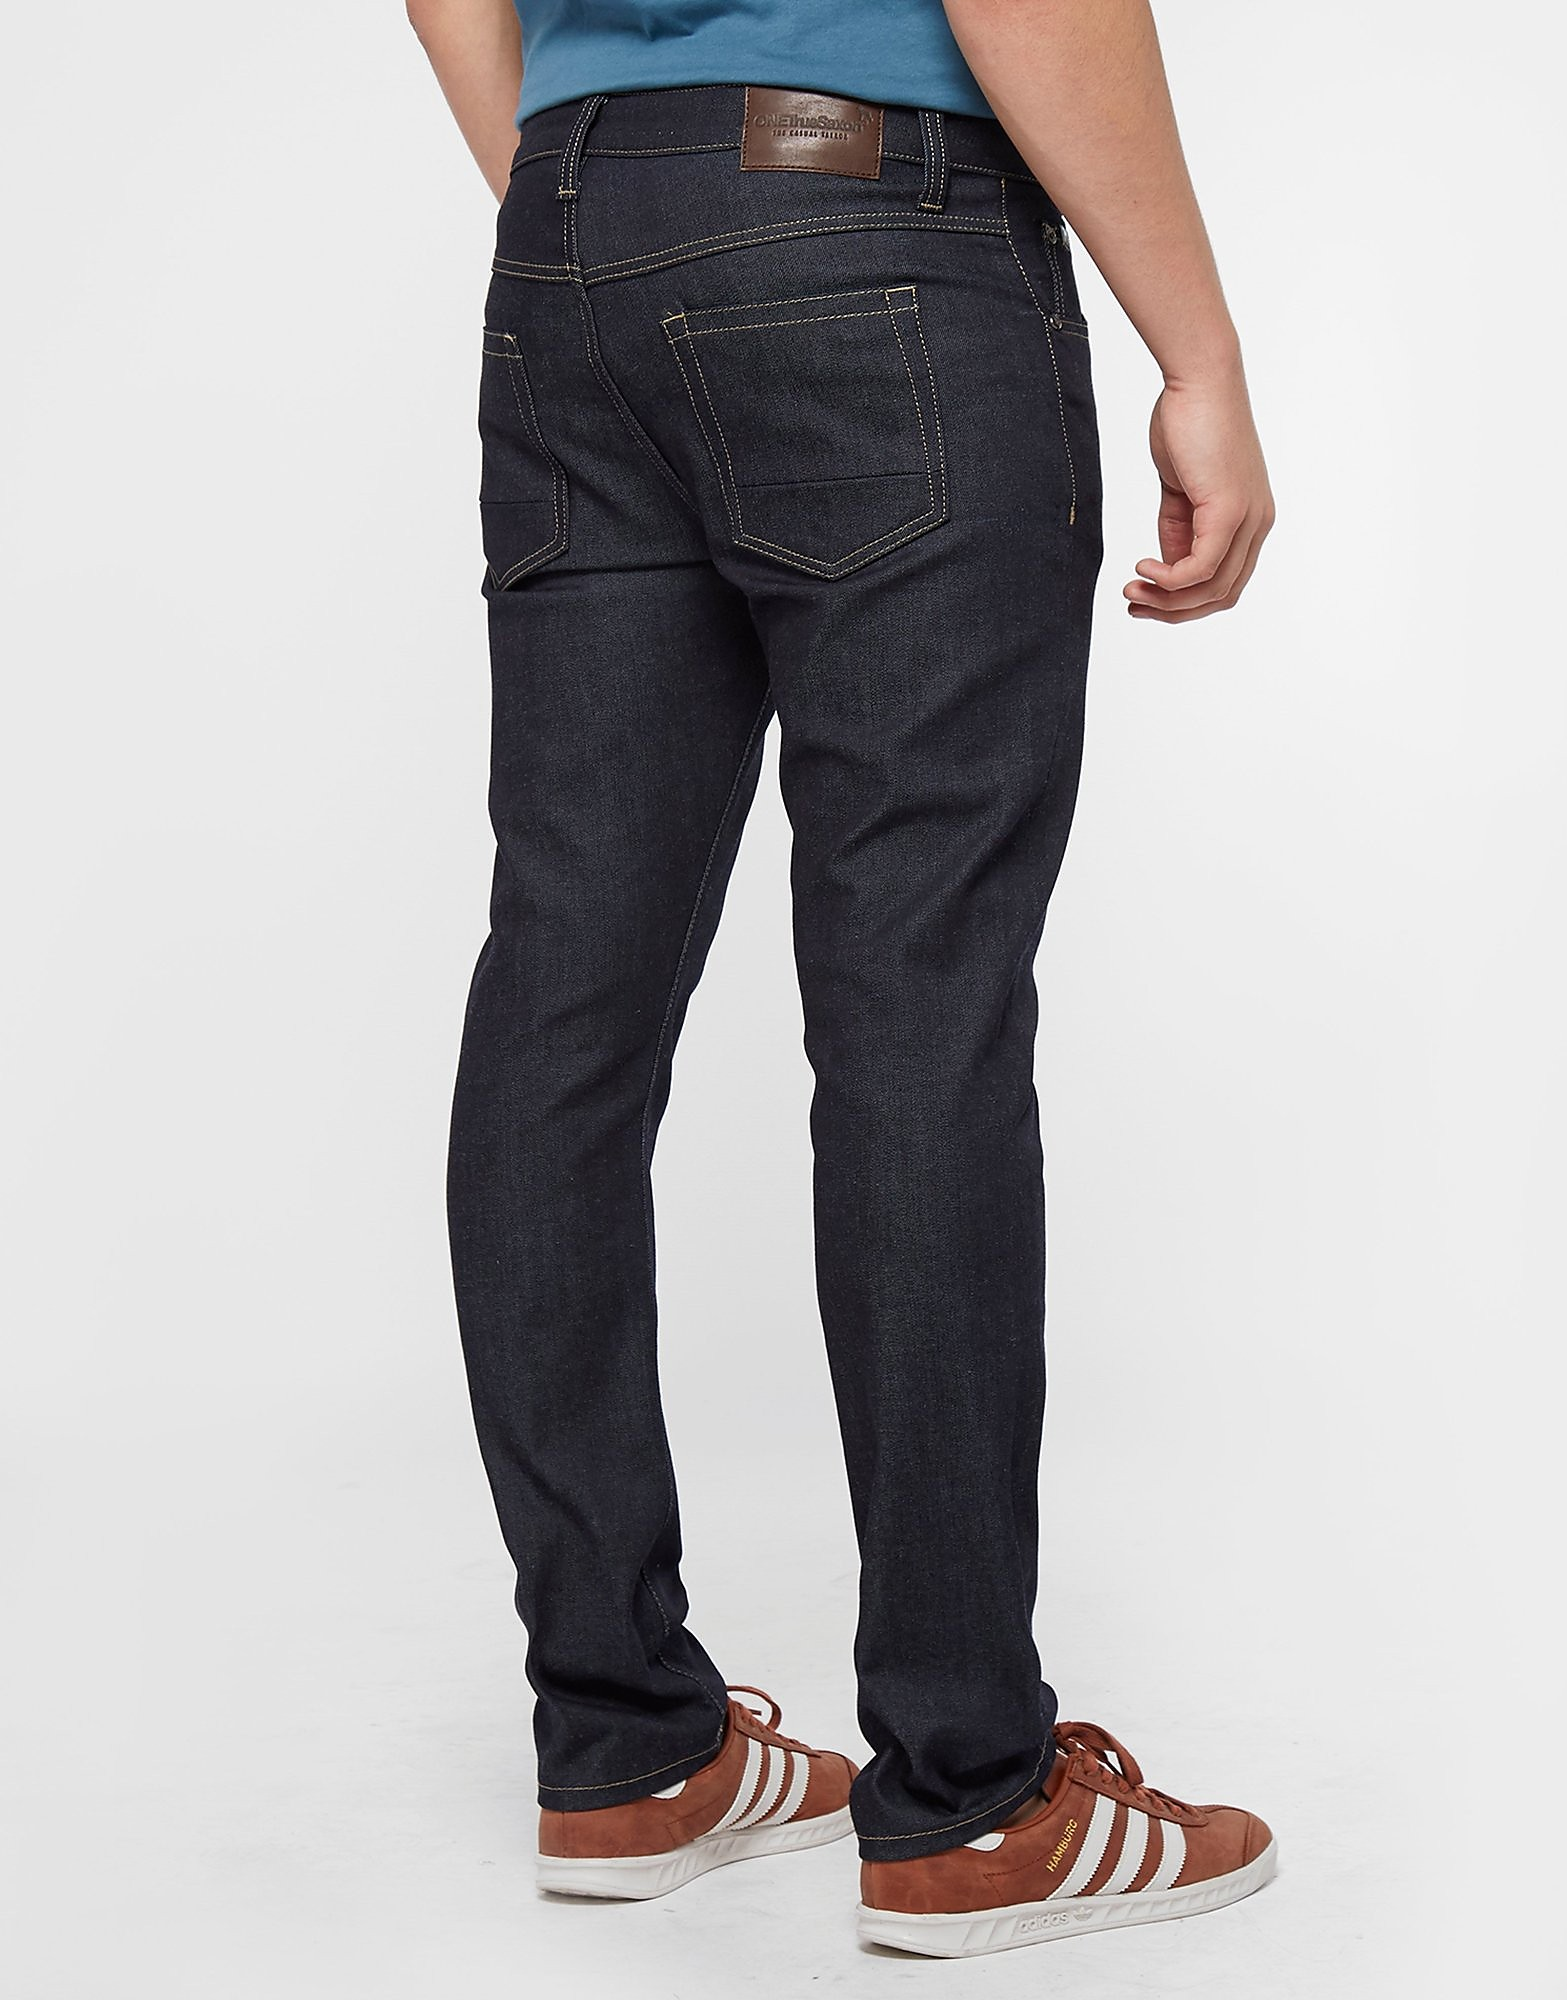 One True Saxon Tapered Jeans - Exclusive